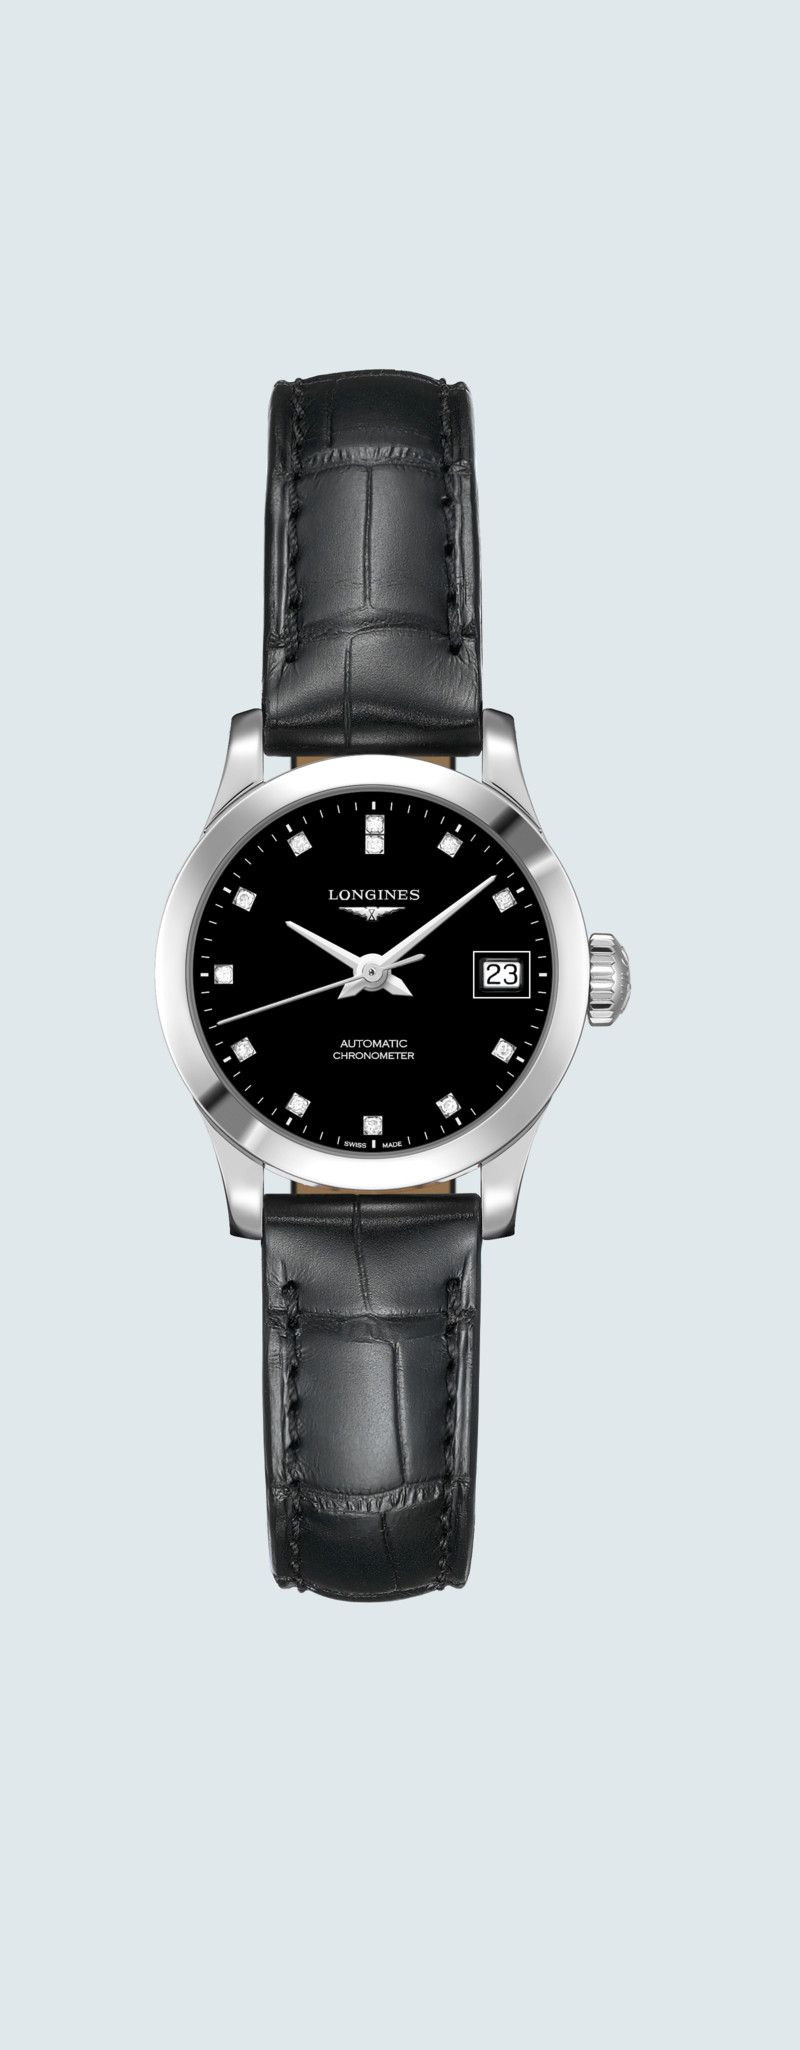 26.00 mm Stainless steel case with Black lacquered polished dial and Alligator strap Black strap -